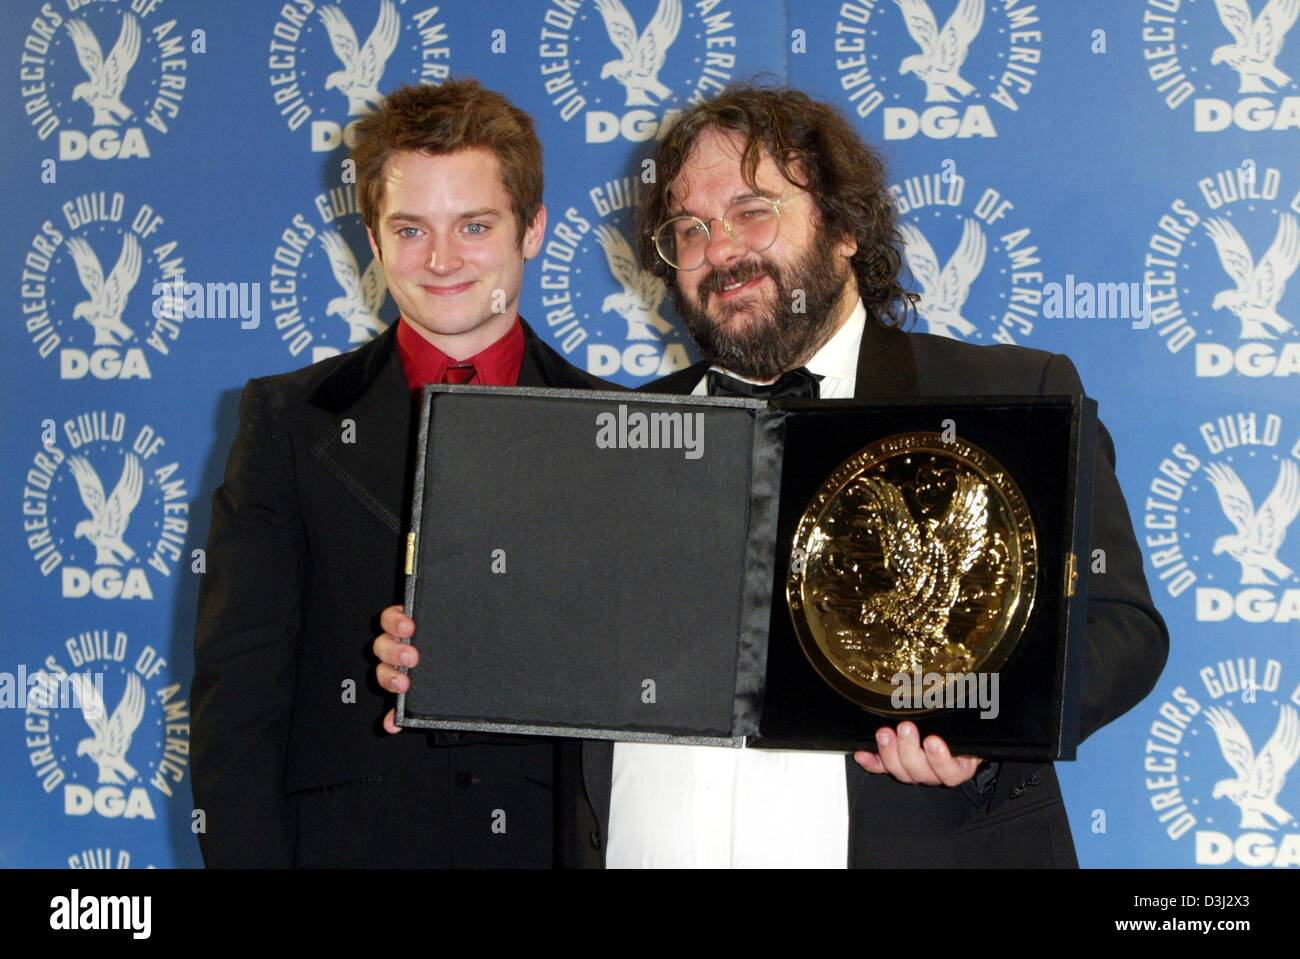 cfef0b9ae07b (dpa) - US actor Elijah Wood (L) smiles as he stands next